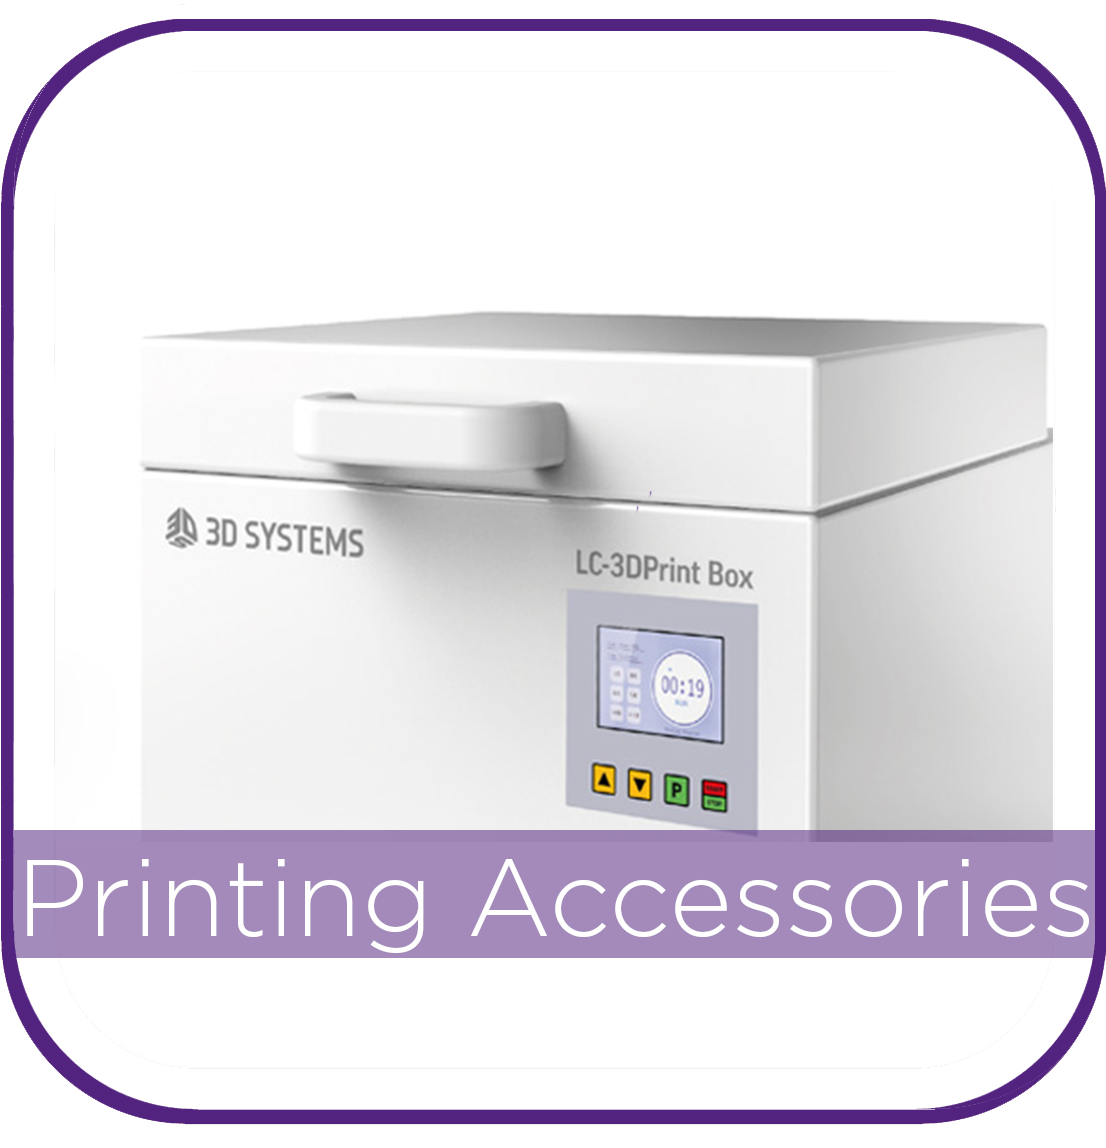 Printing Accessories